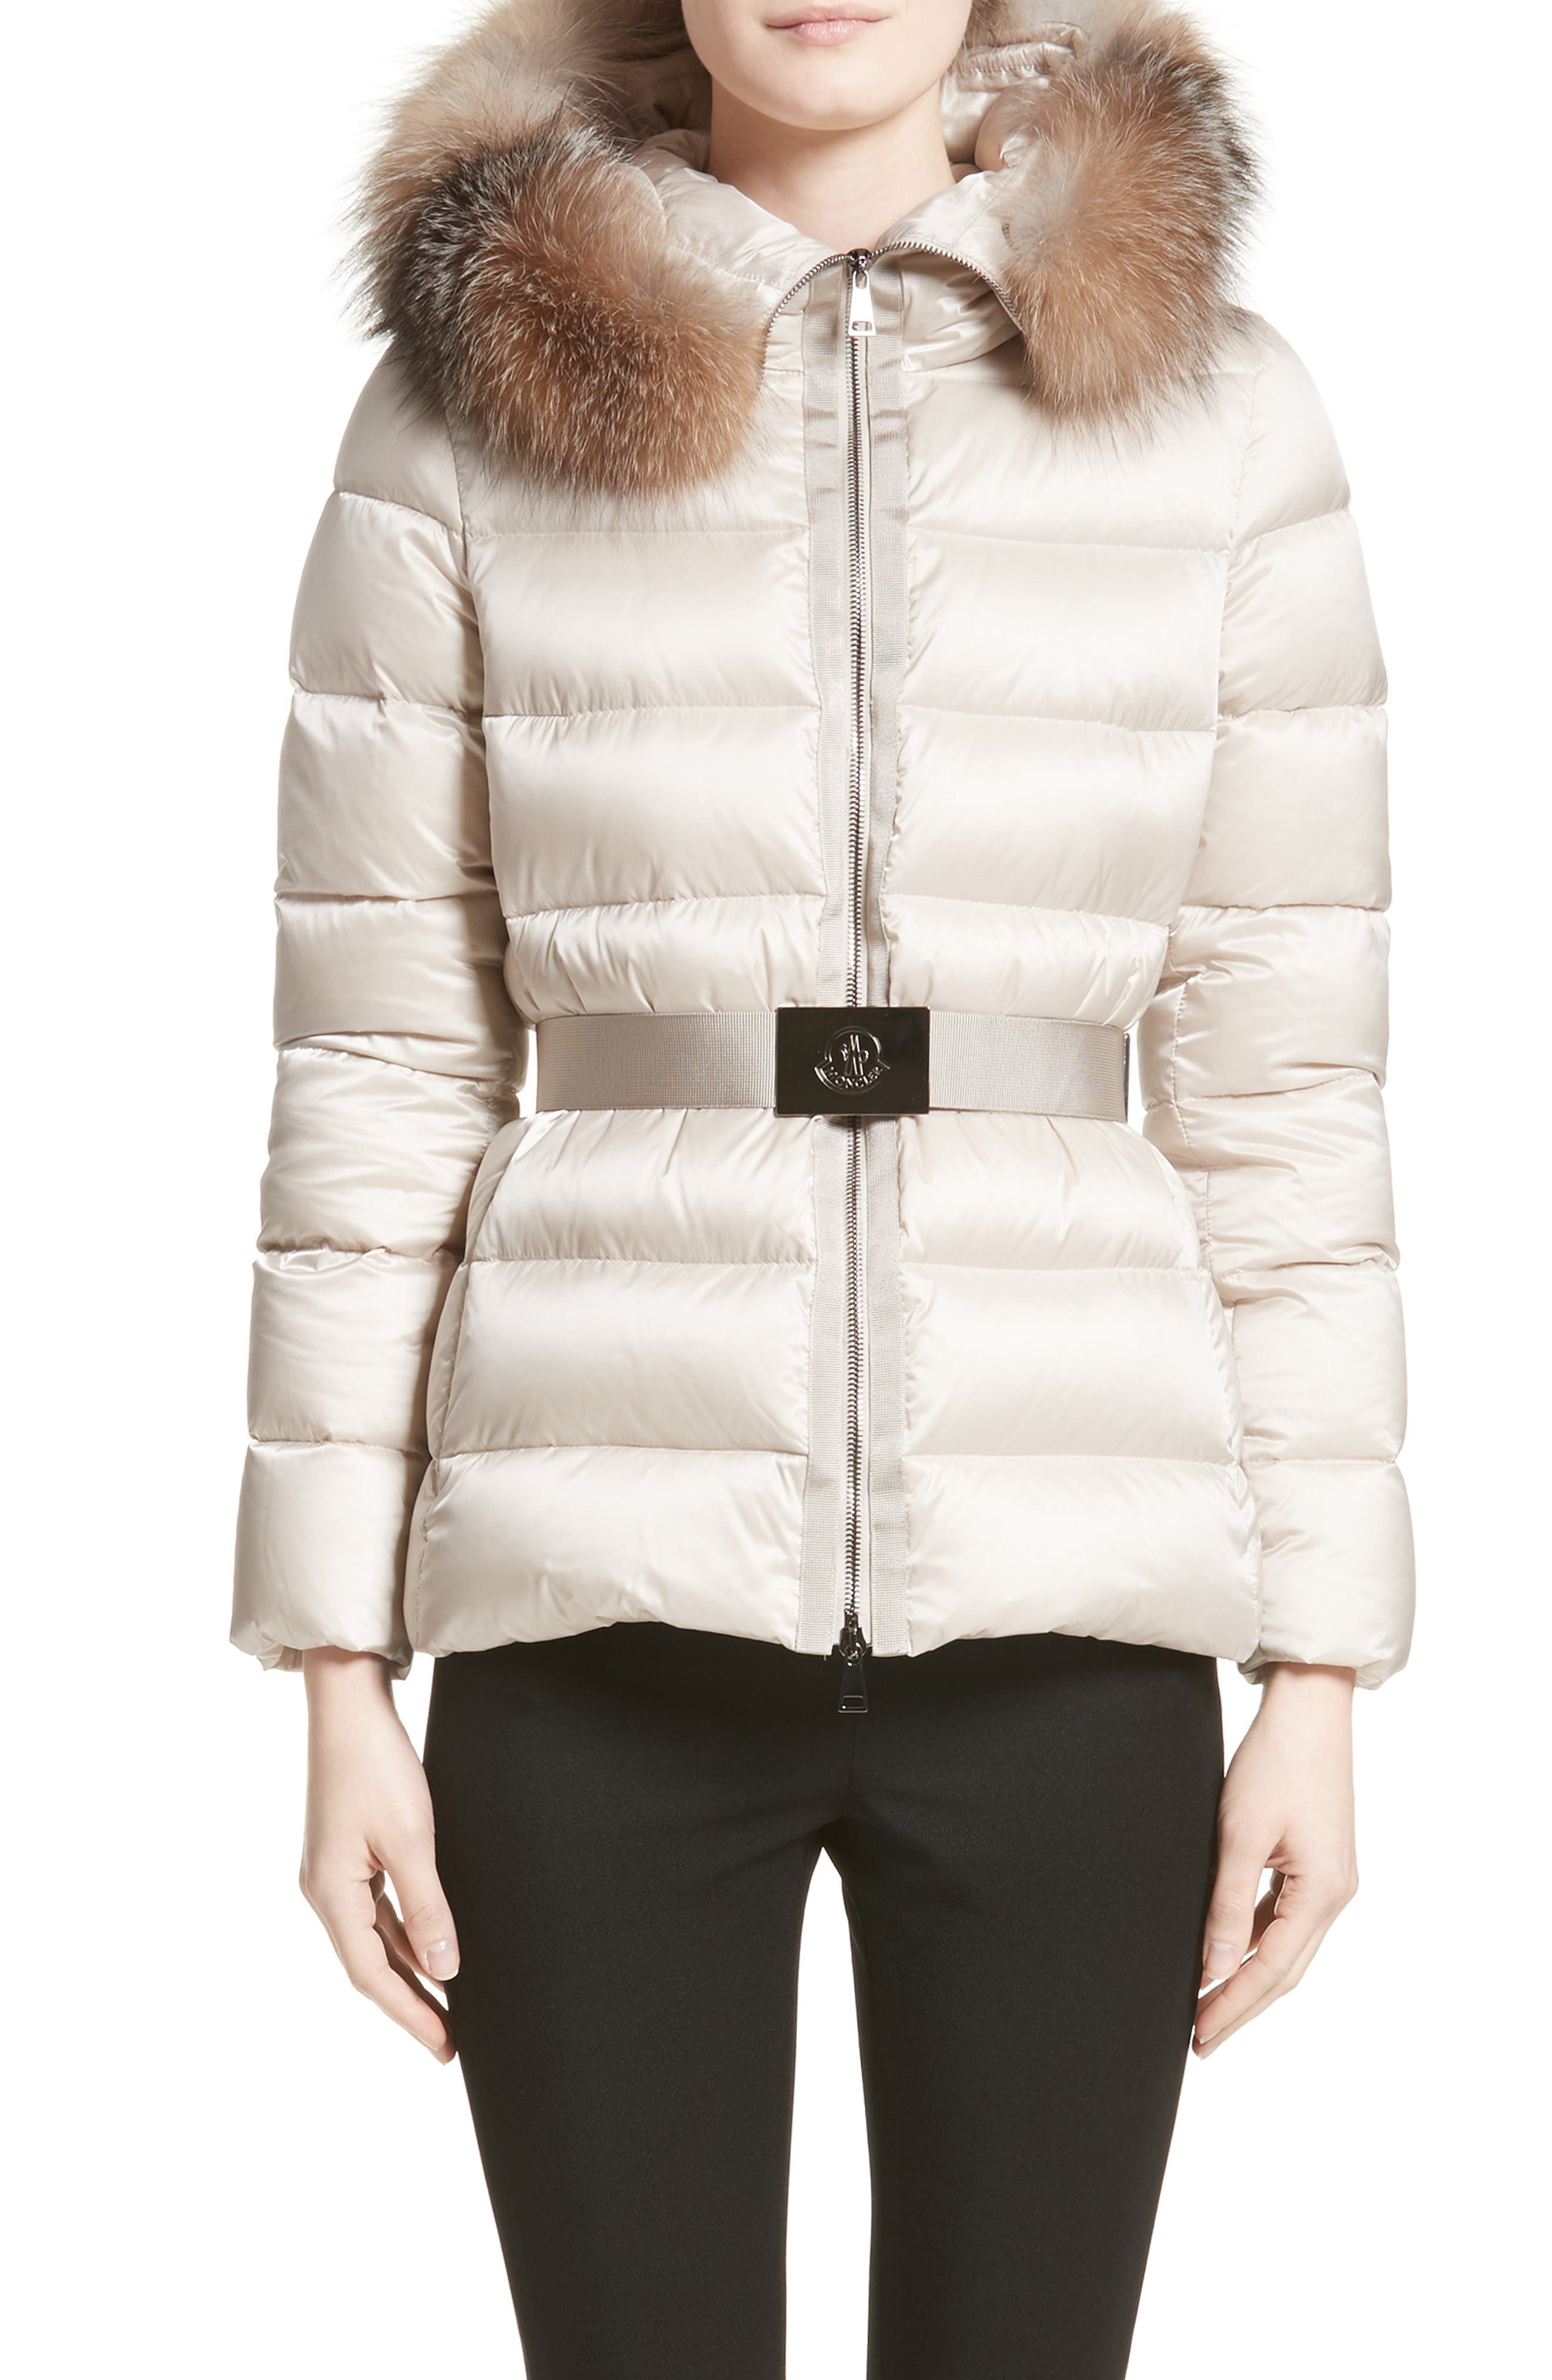 moncler jacket black and white